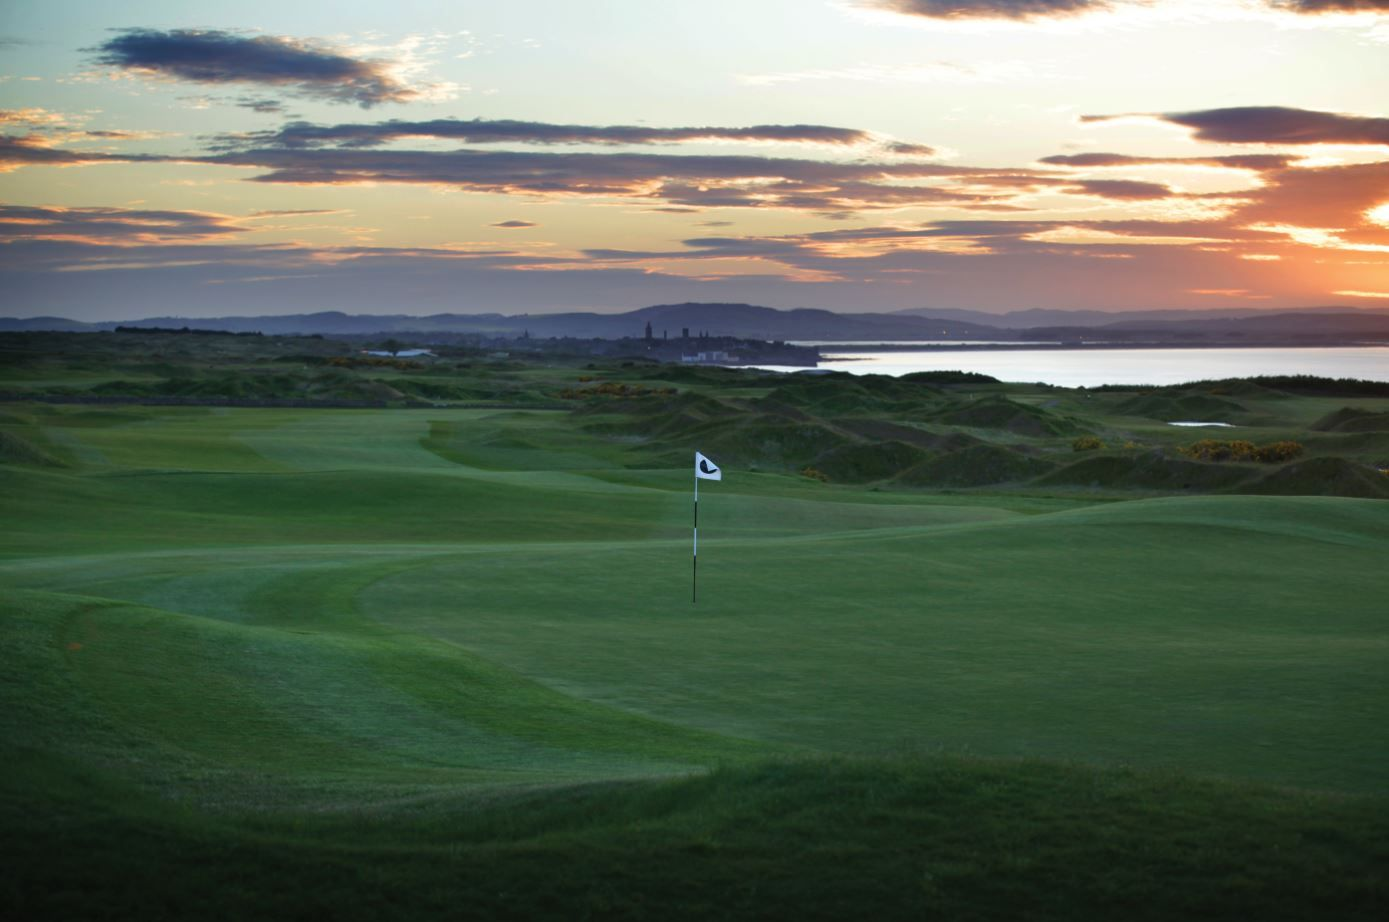 "Troon is pleased to announce it has been selected by Kennedy Wilson Europe Real Estate PLC, owner of Fairmont St Andrews, to manage golf operations at the championship venue located at the ""home of golf."" #Troon #TroonGolf #PlayTroon #HomeOfGolf"